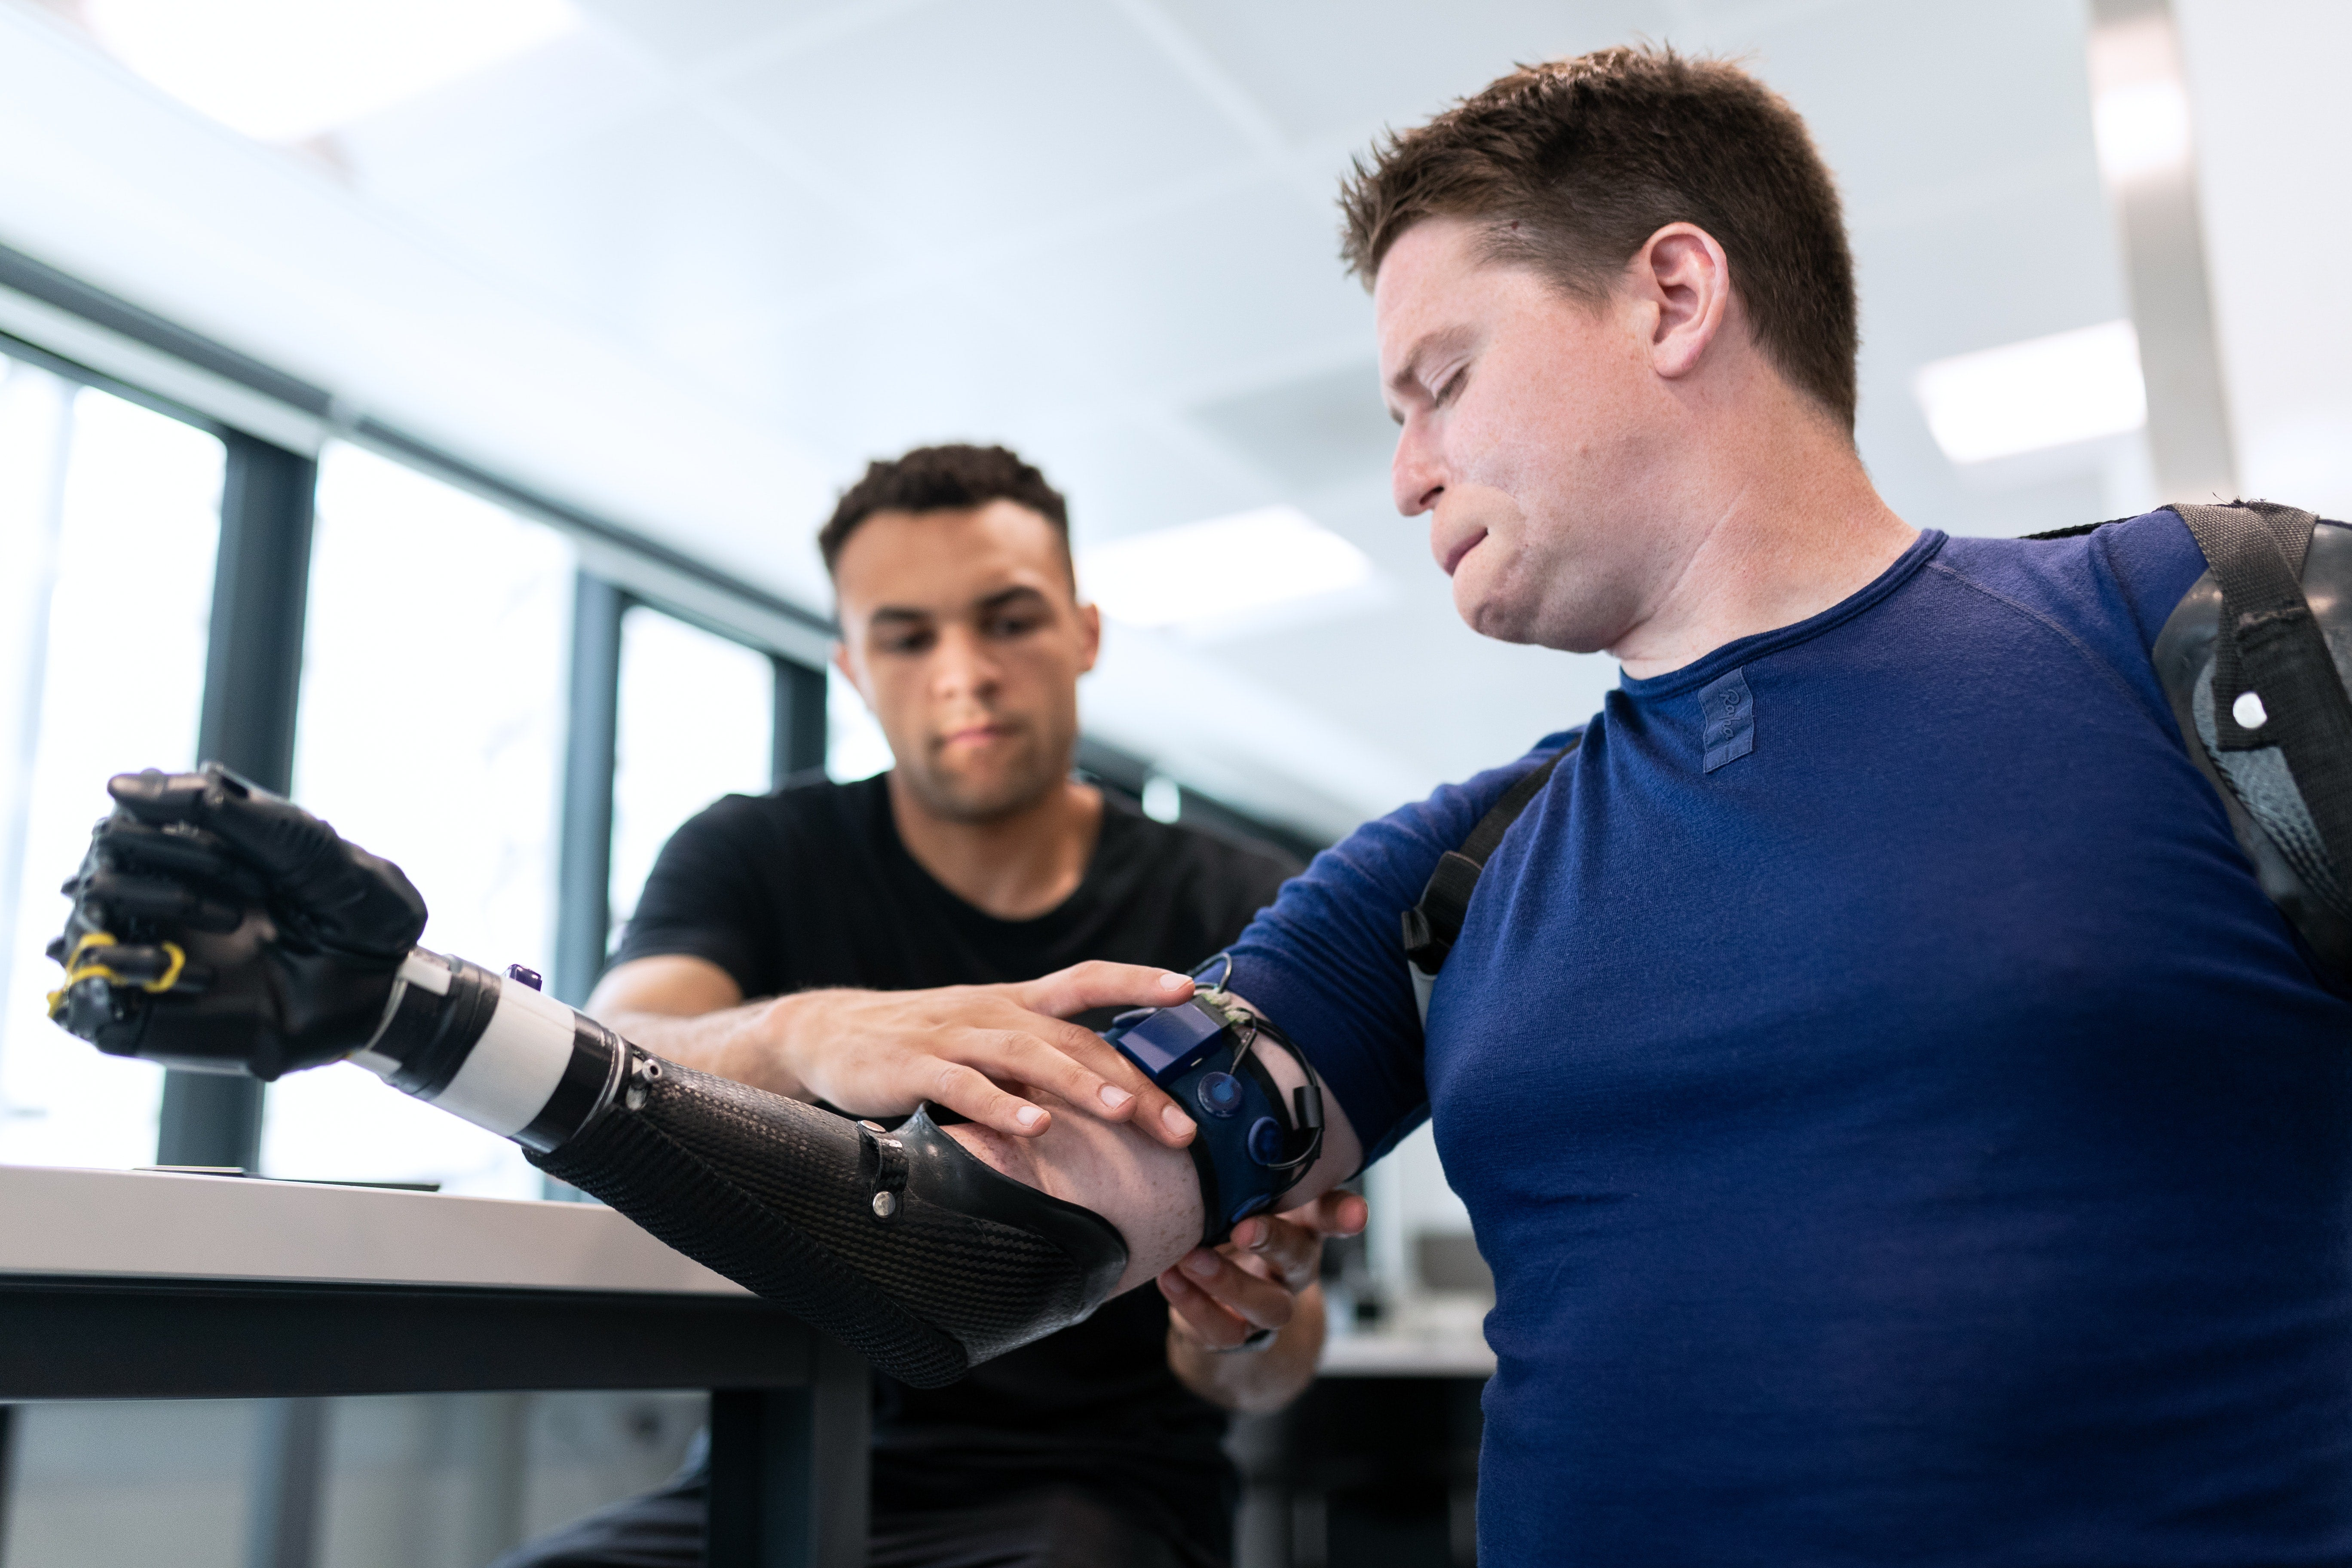 Man fitting a bionic arm to disabled patient